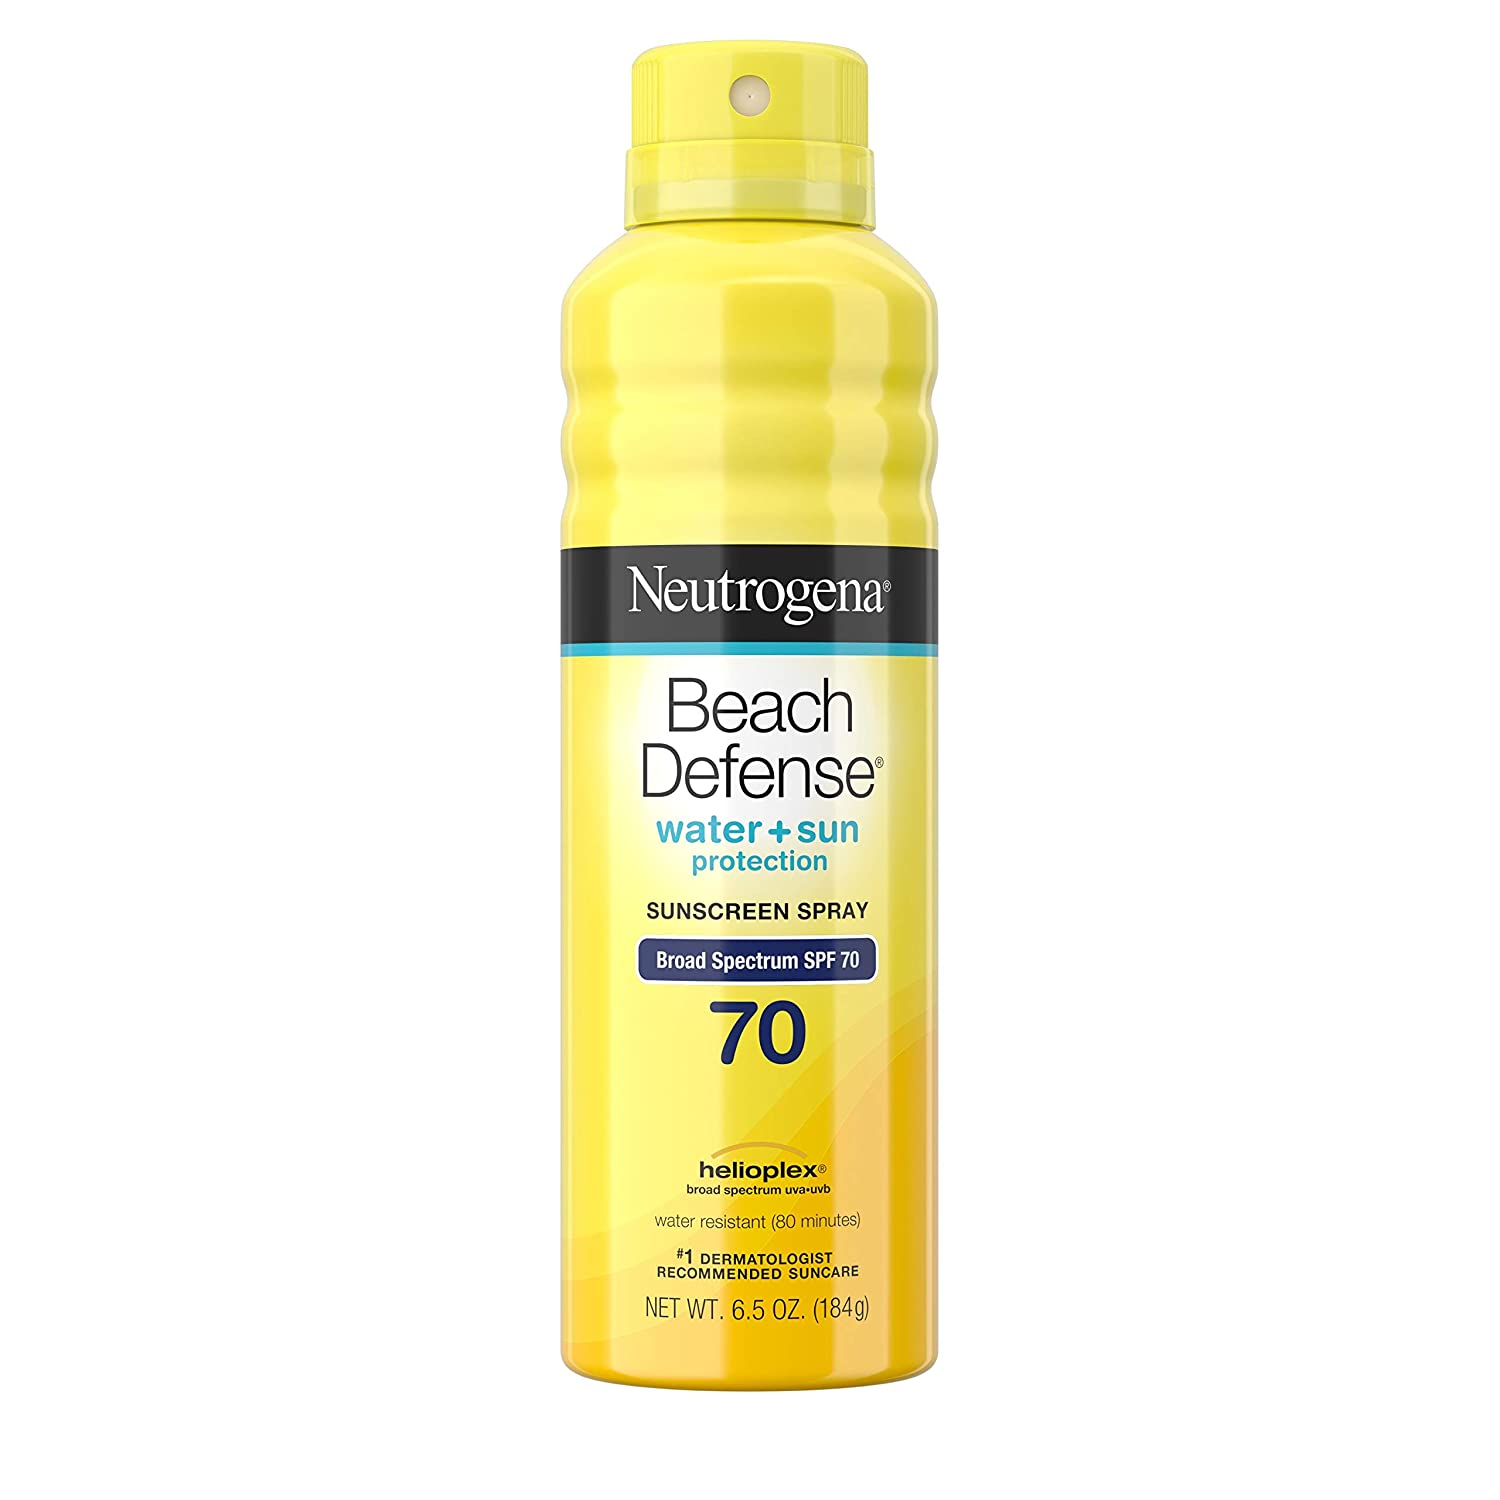 Neutrogena Beach Defense Body Spray Sunscreen SPF 70